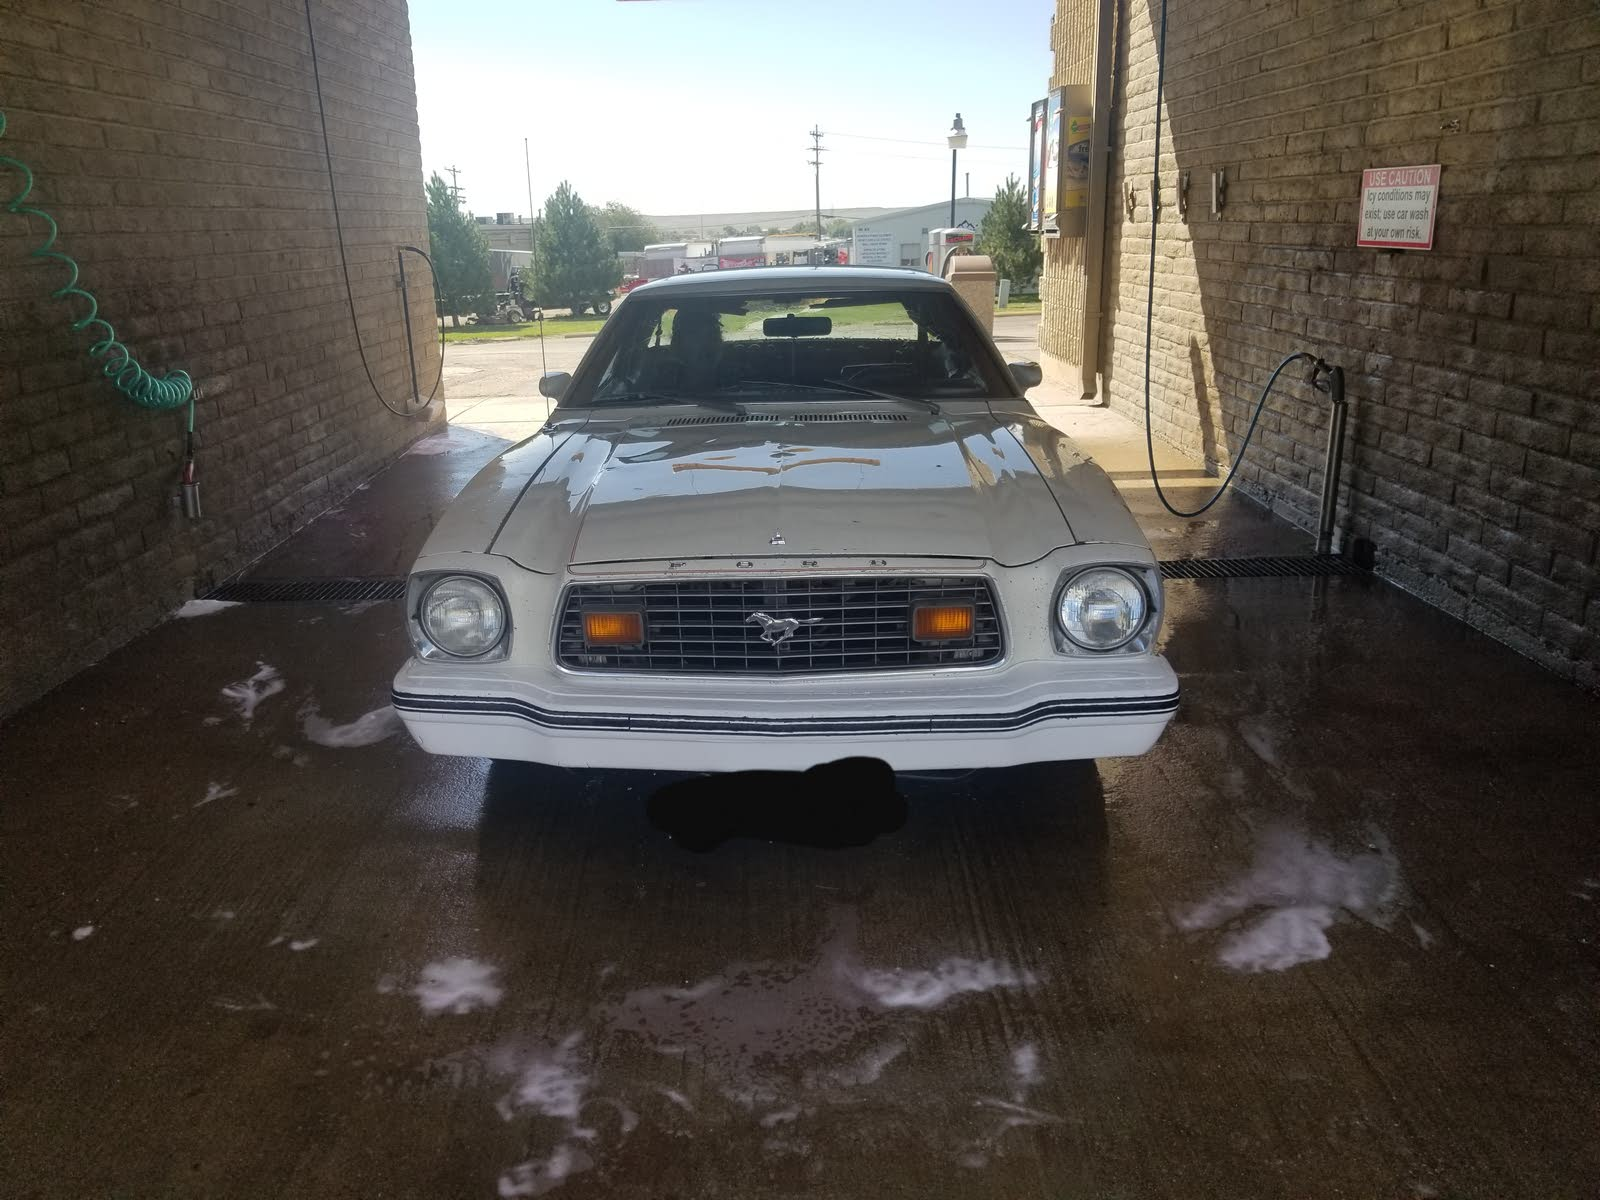 Ford Mustang II Questions - 76 mustang loses power while